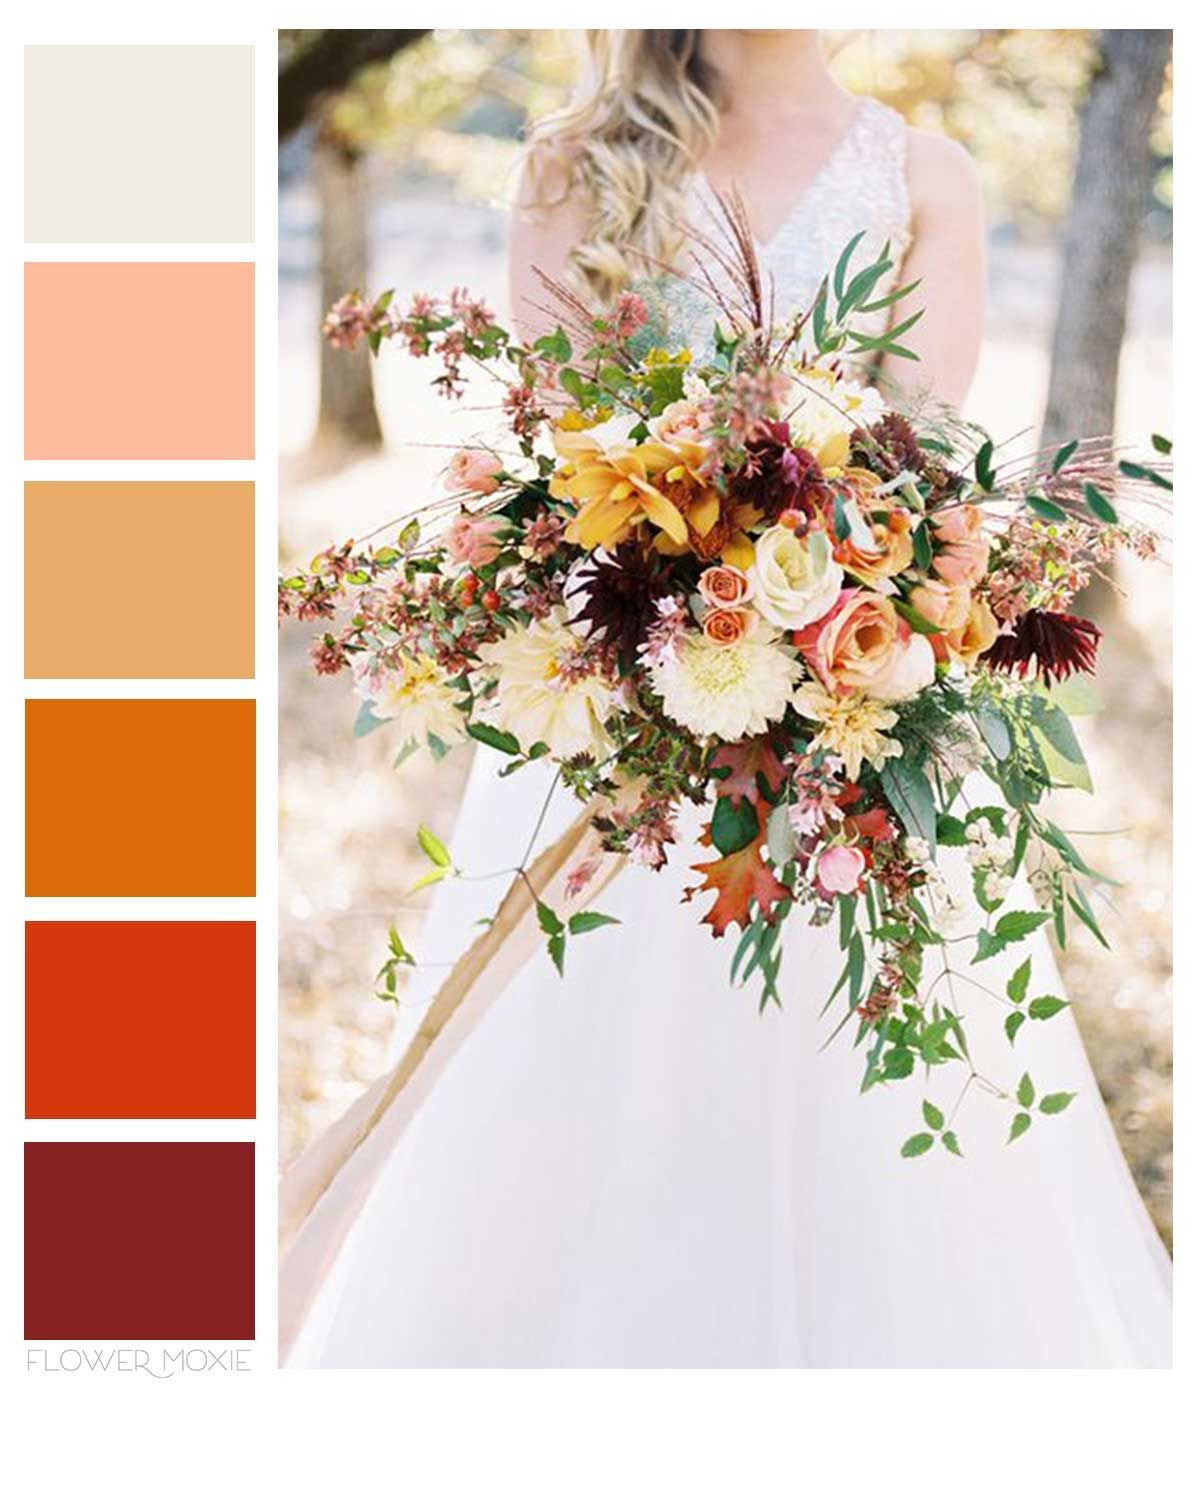 MoodboardInspired DIY Floral Packages for Weddings